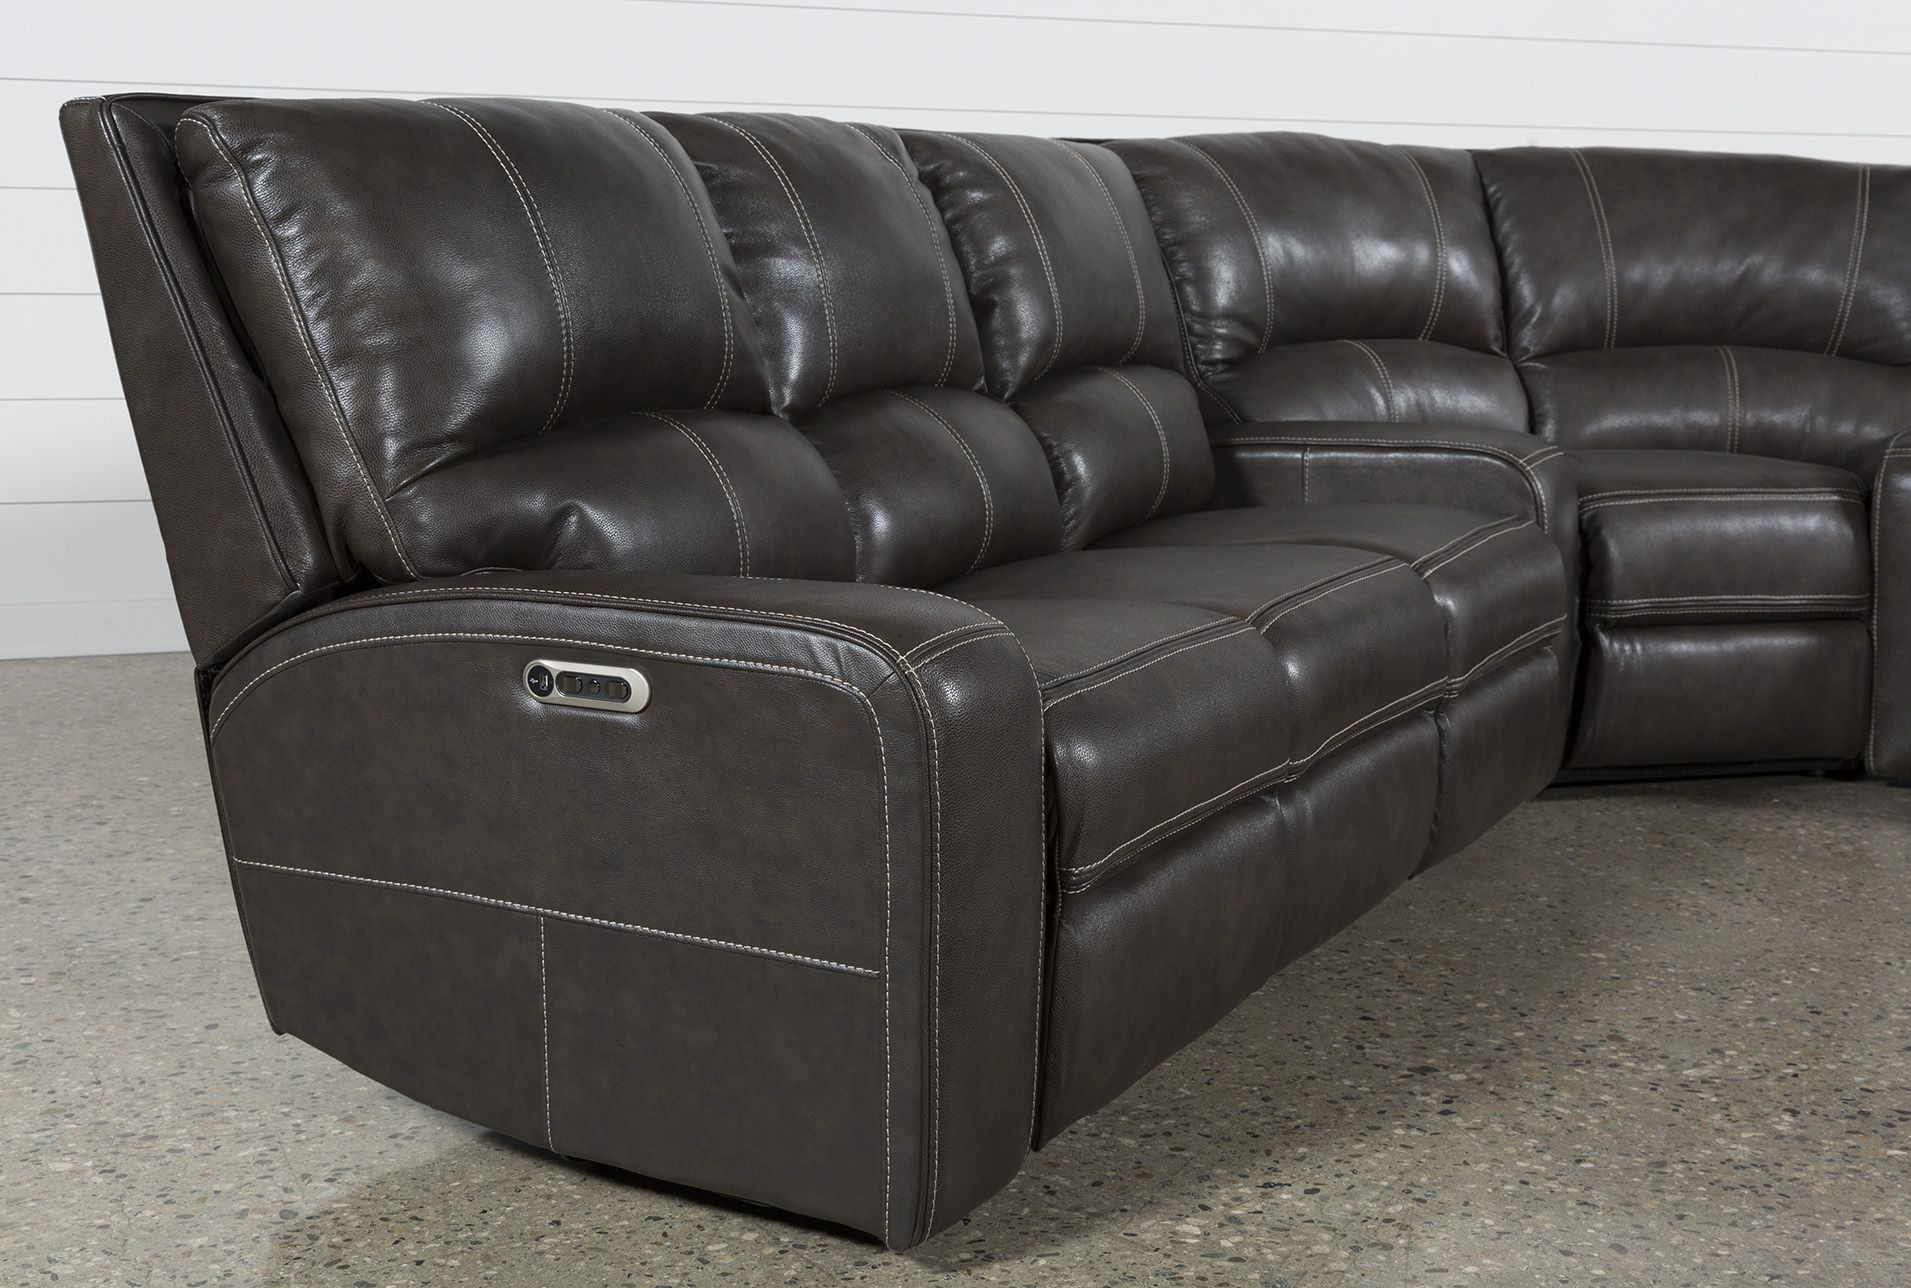 Clyde Grey Leather 3-teilige Power Reclining Sectionals mit Pwr Hdrst Usb